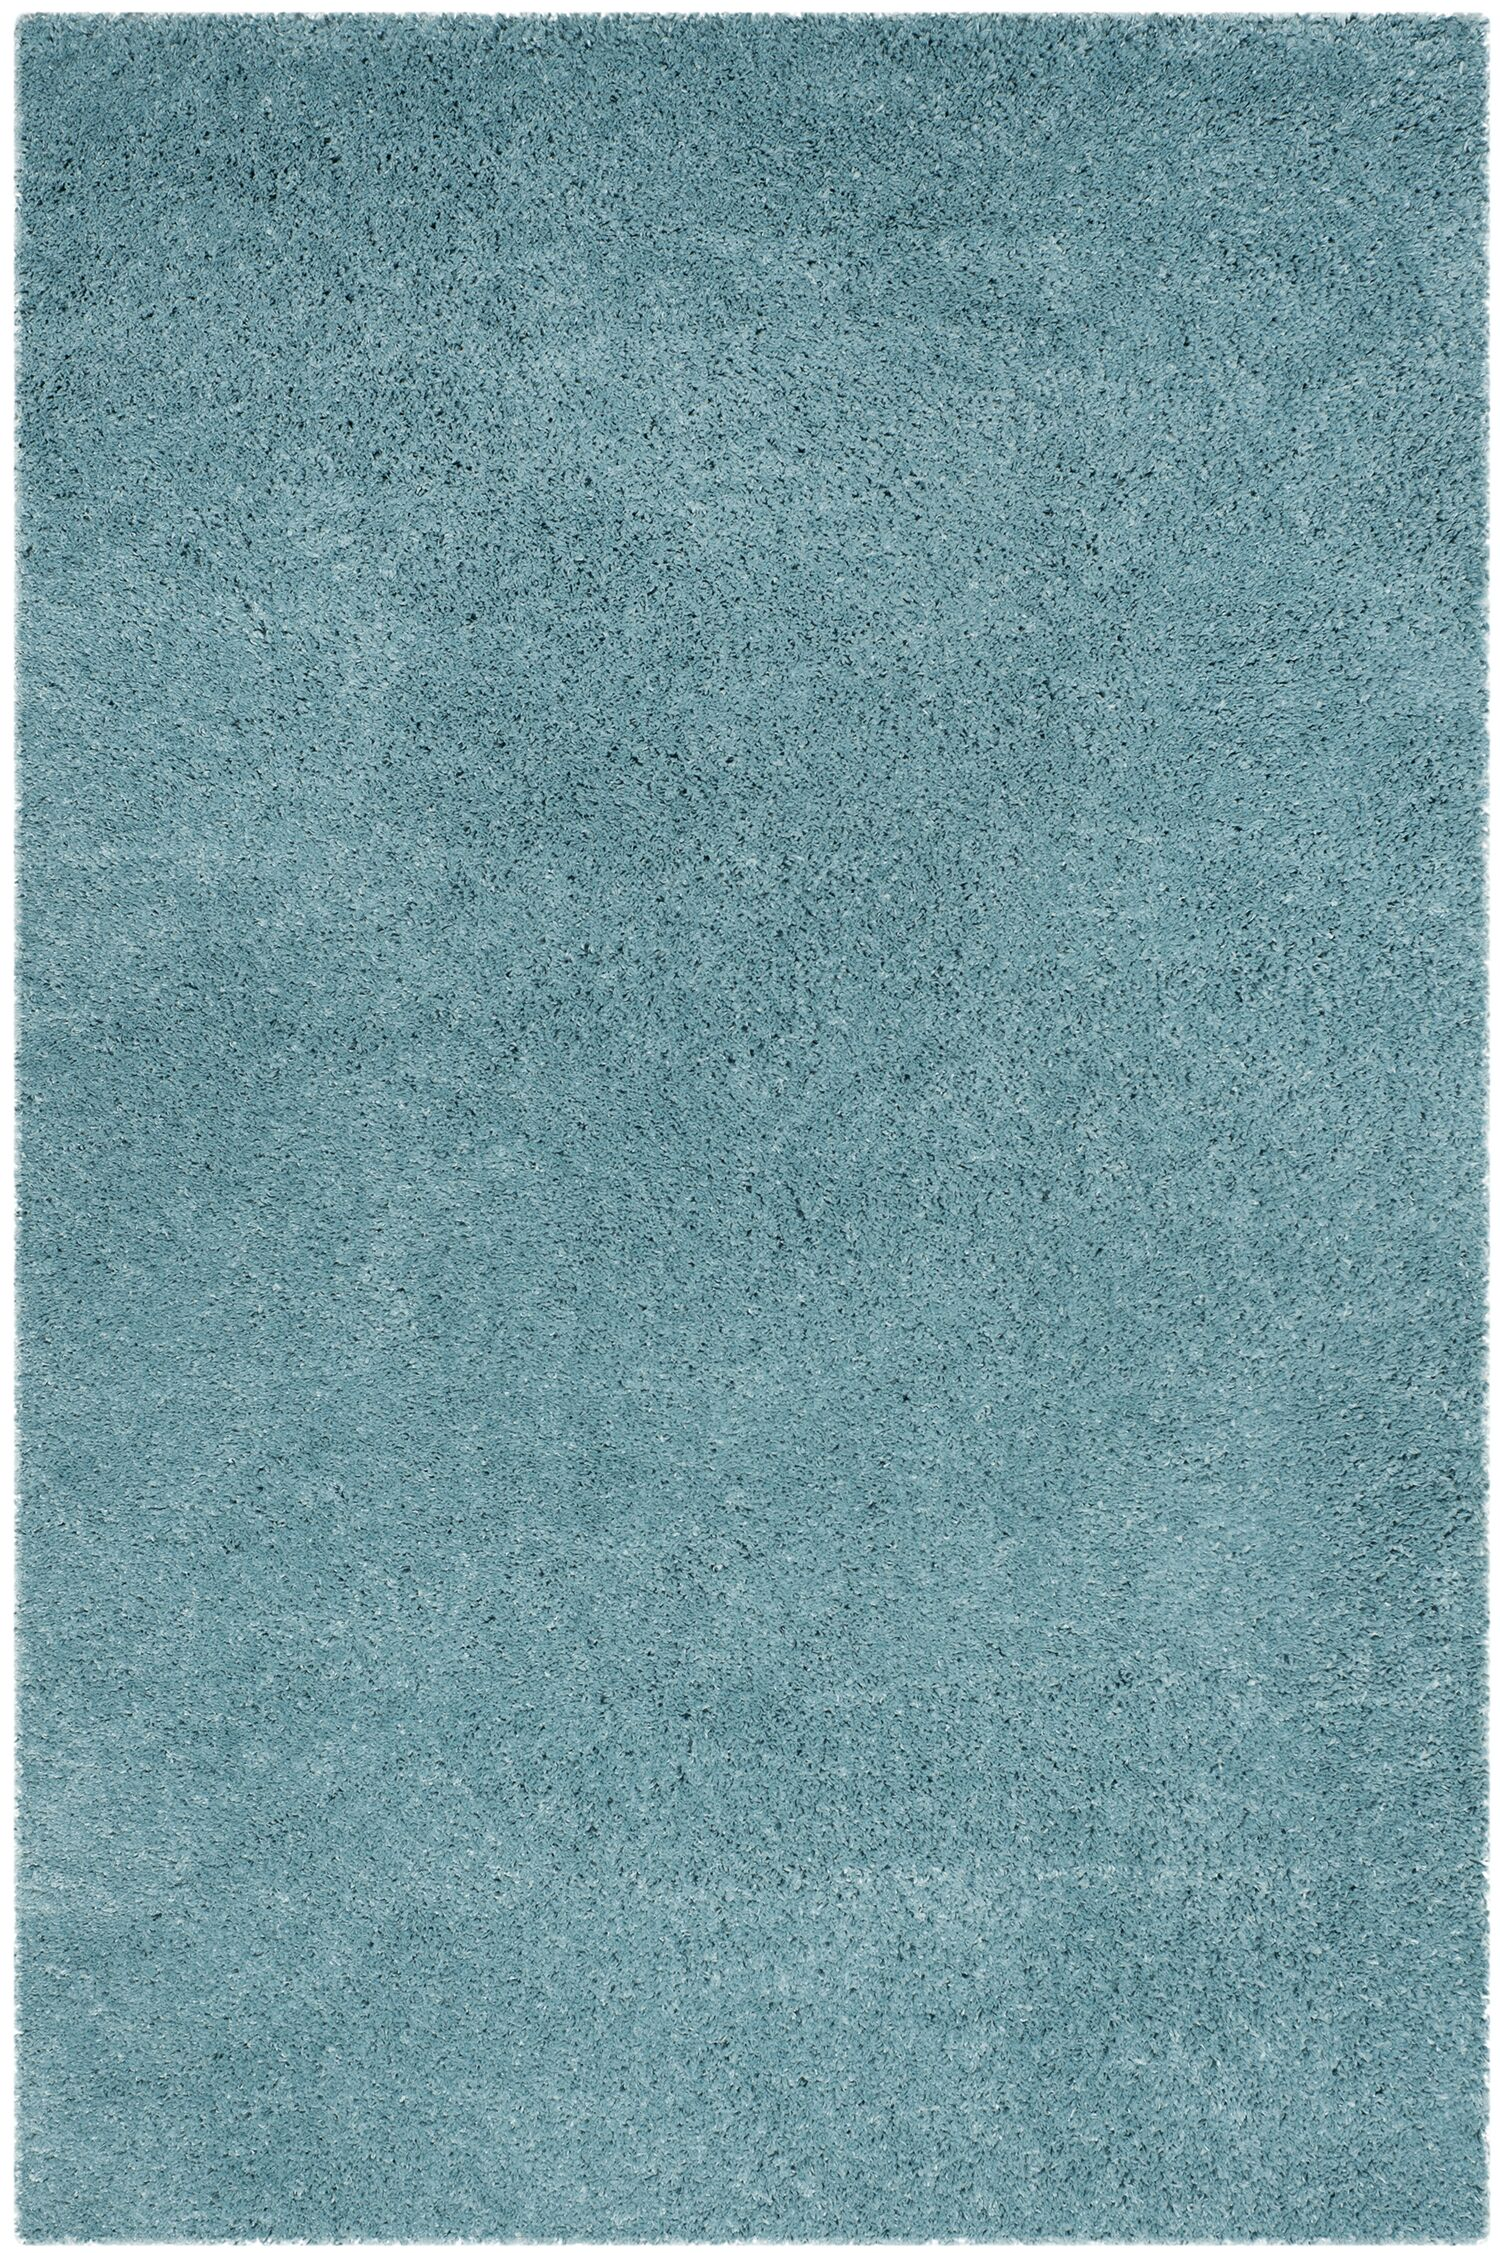 Hornell Power Loomed Blue Area Rug Rug Size: Rectangle 5'1